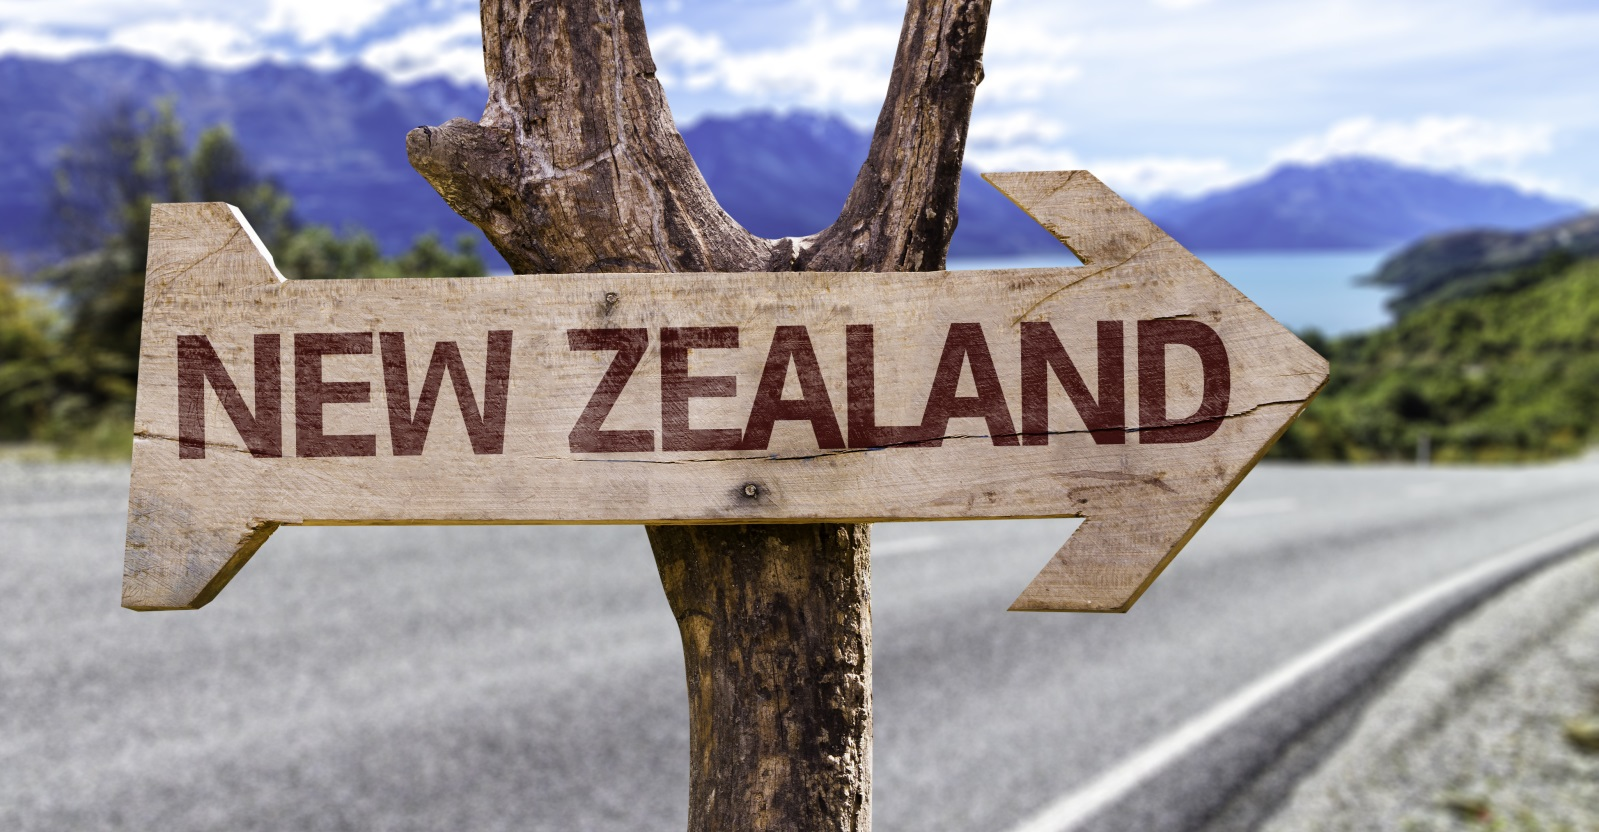 New Zealand sign on a rural road